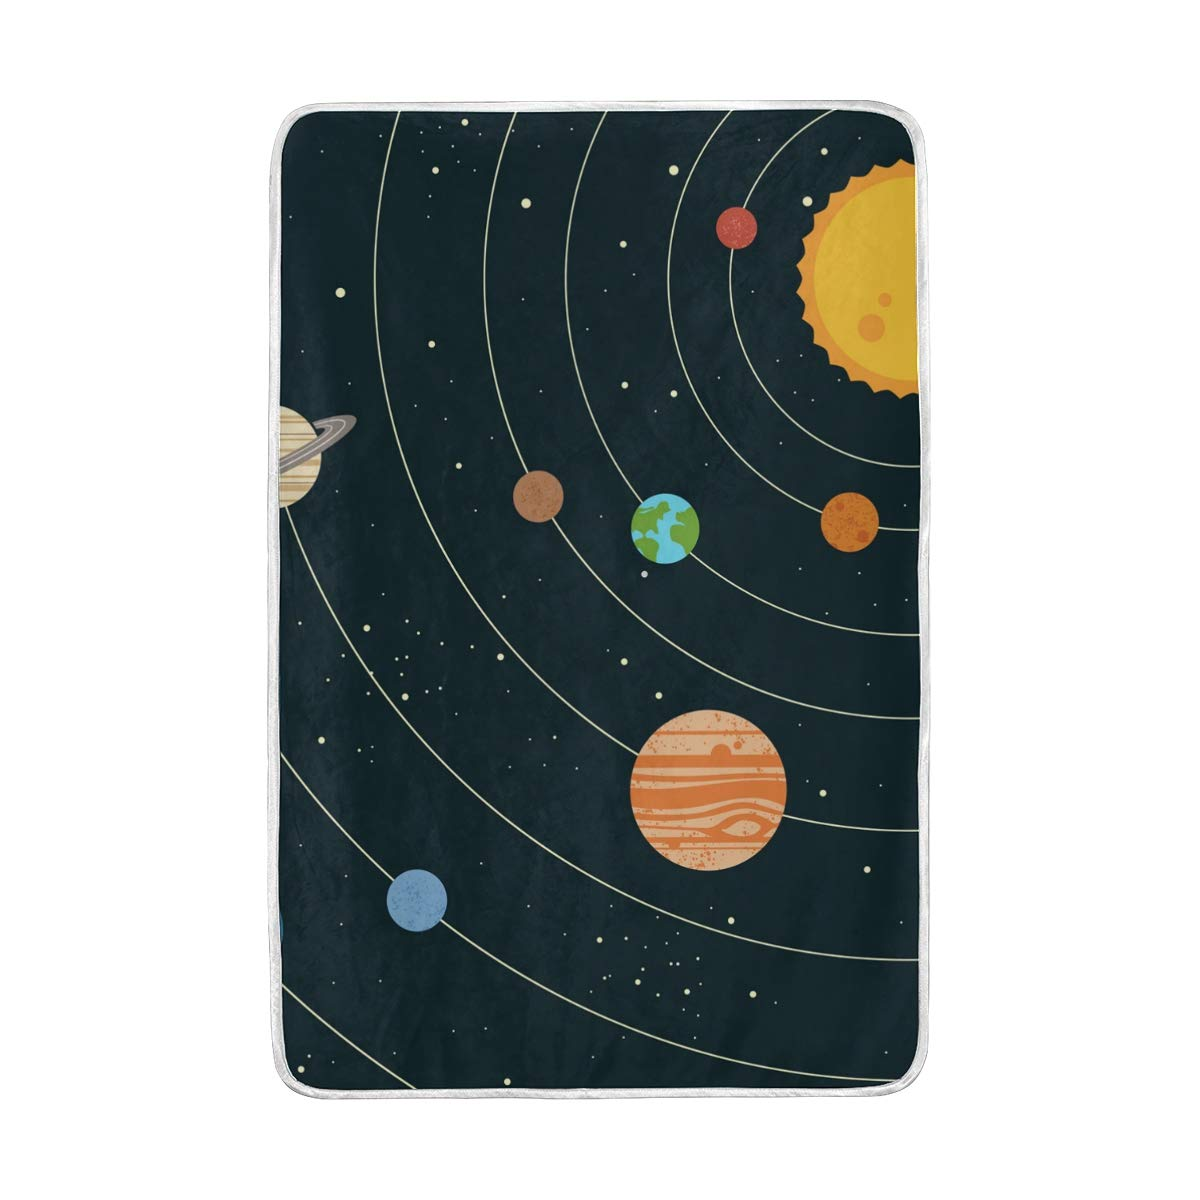 MAPOLO Solar System Illustration Soft Warm Throw Blanket Travel Camping Blankets Lightweight for Couch Sofa Bed, 90 x 60 Inches